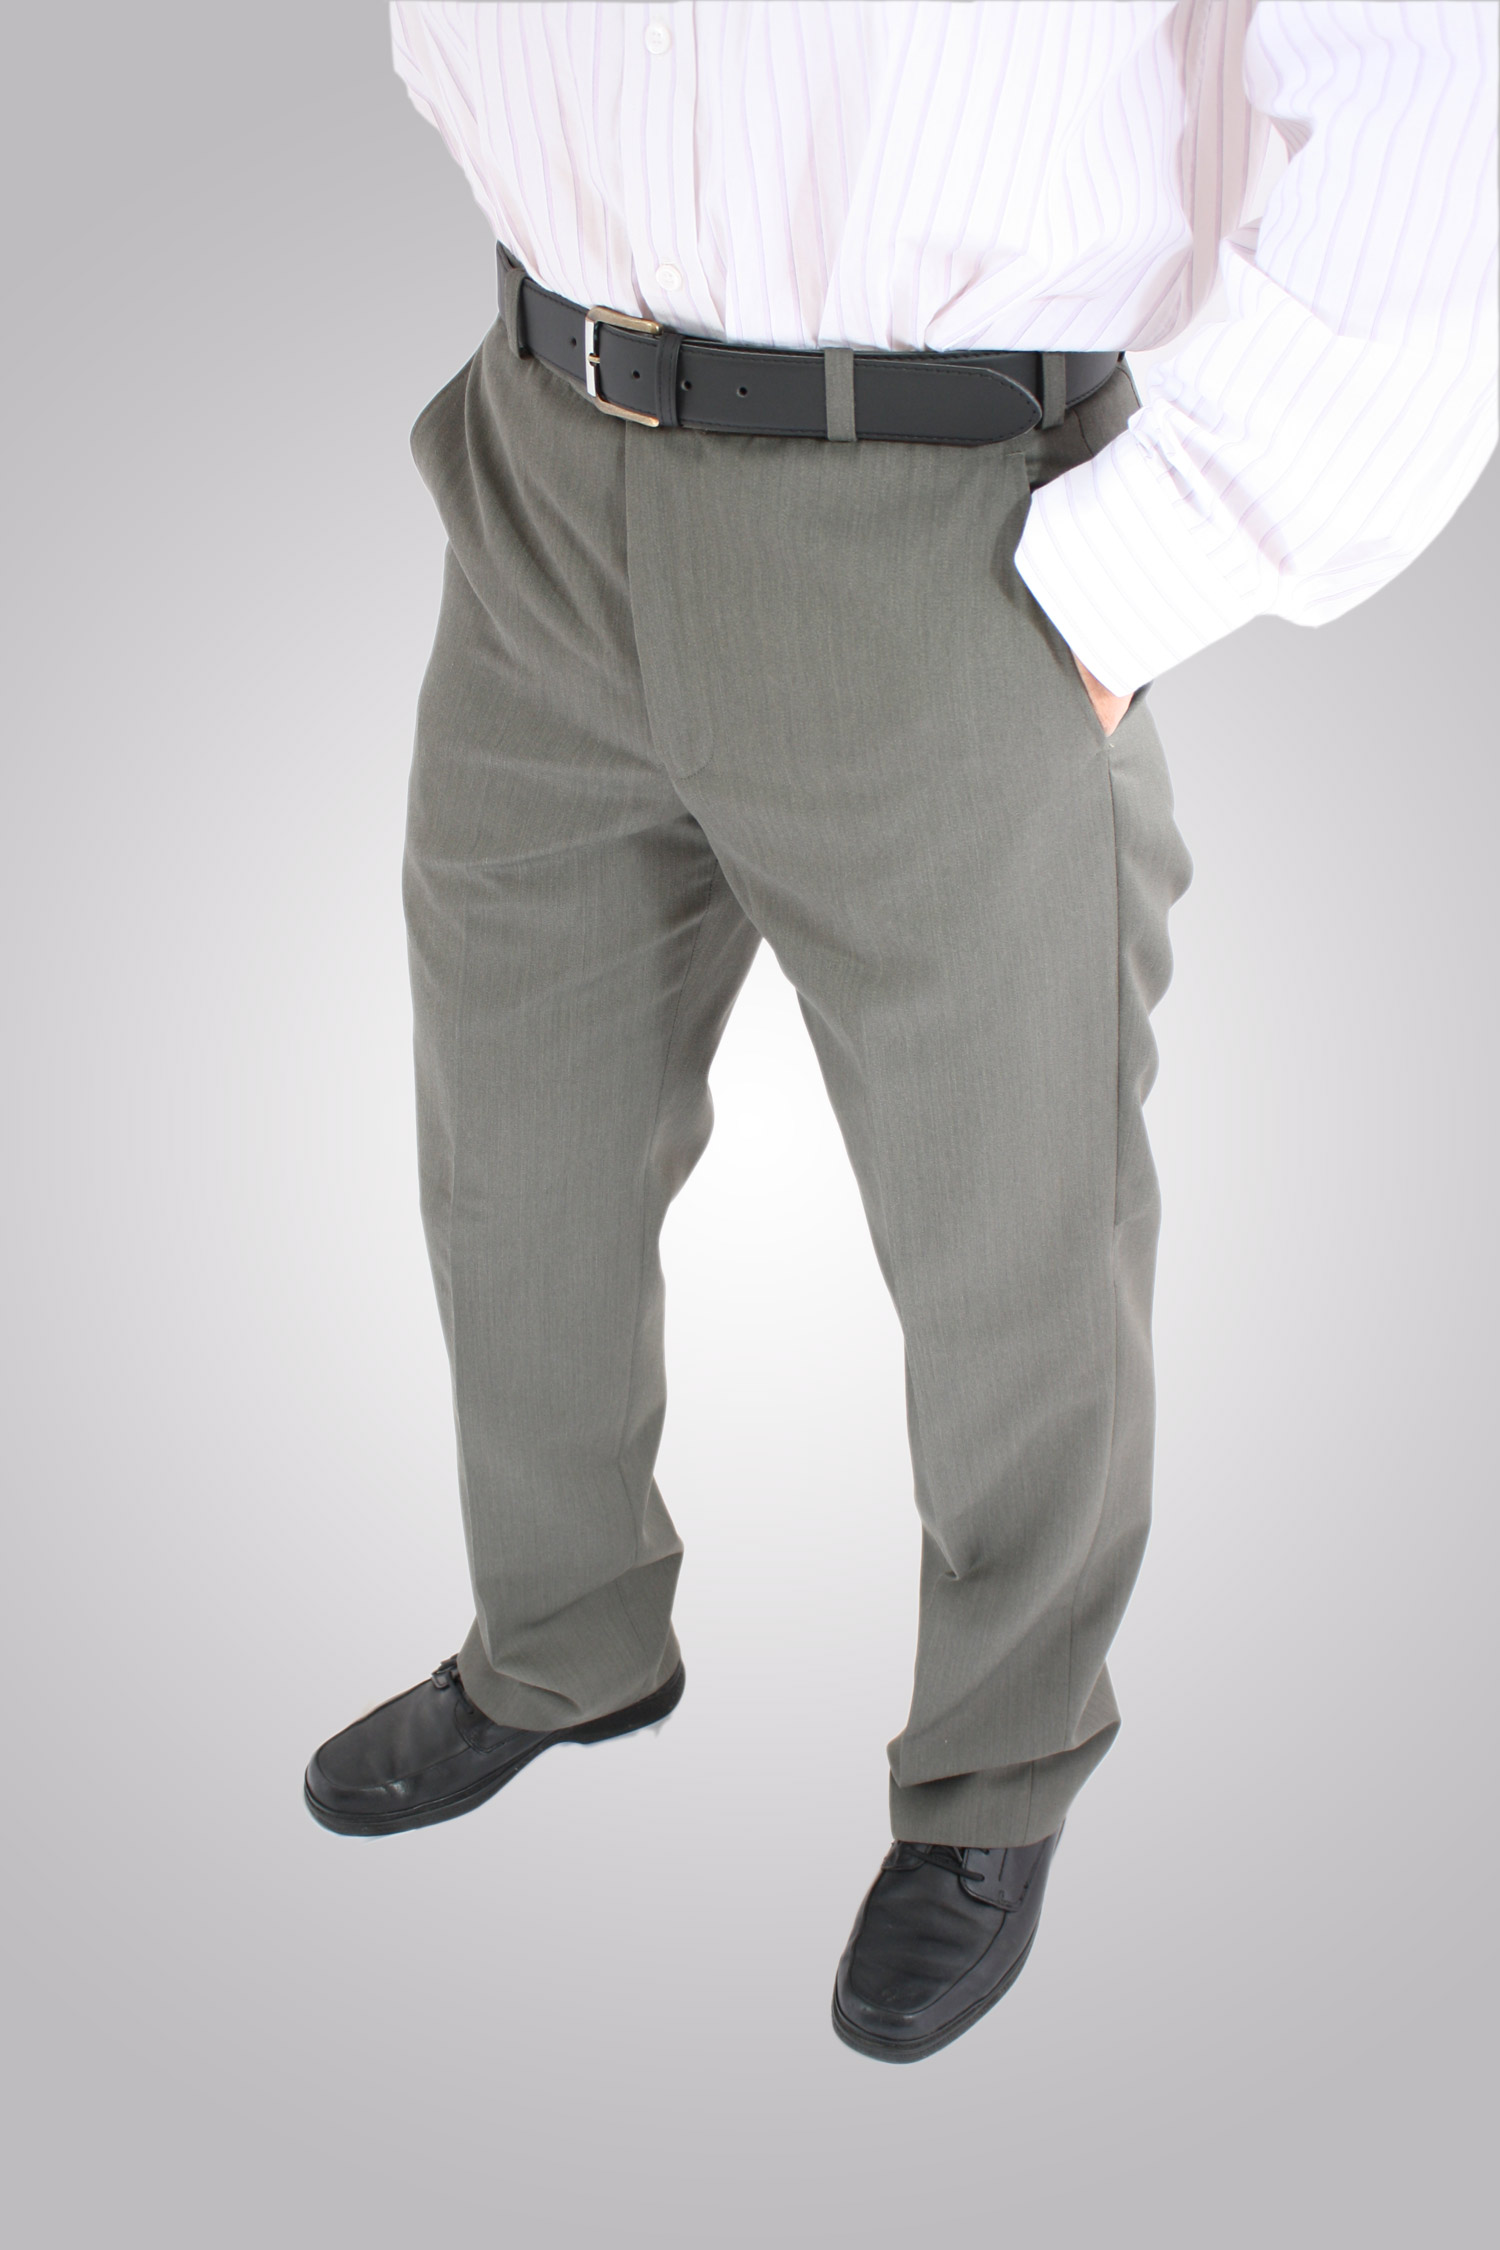 daniel-grahame-prestige-mens-trousers-1